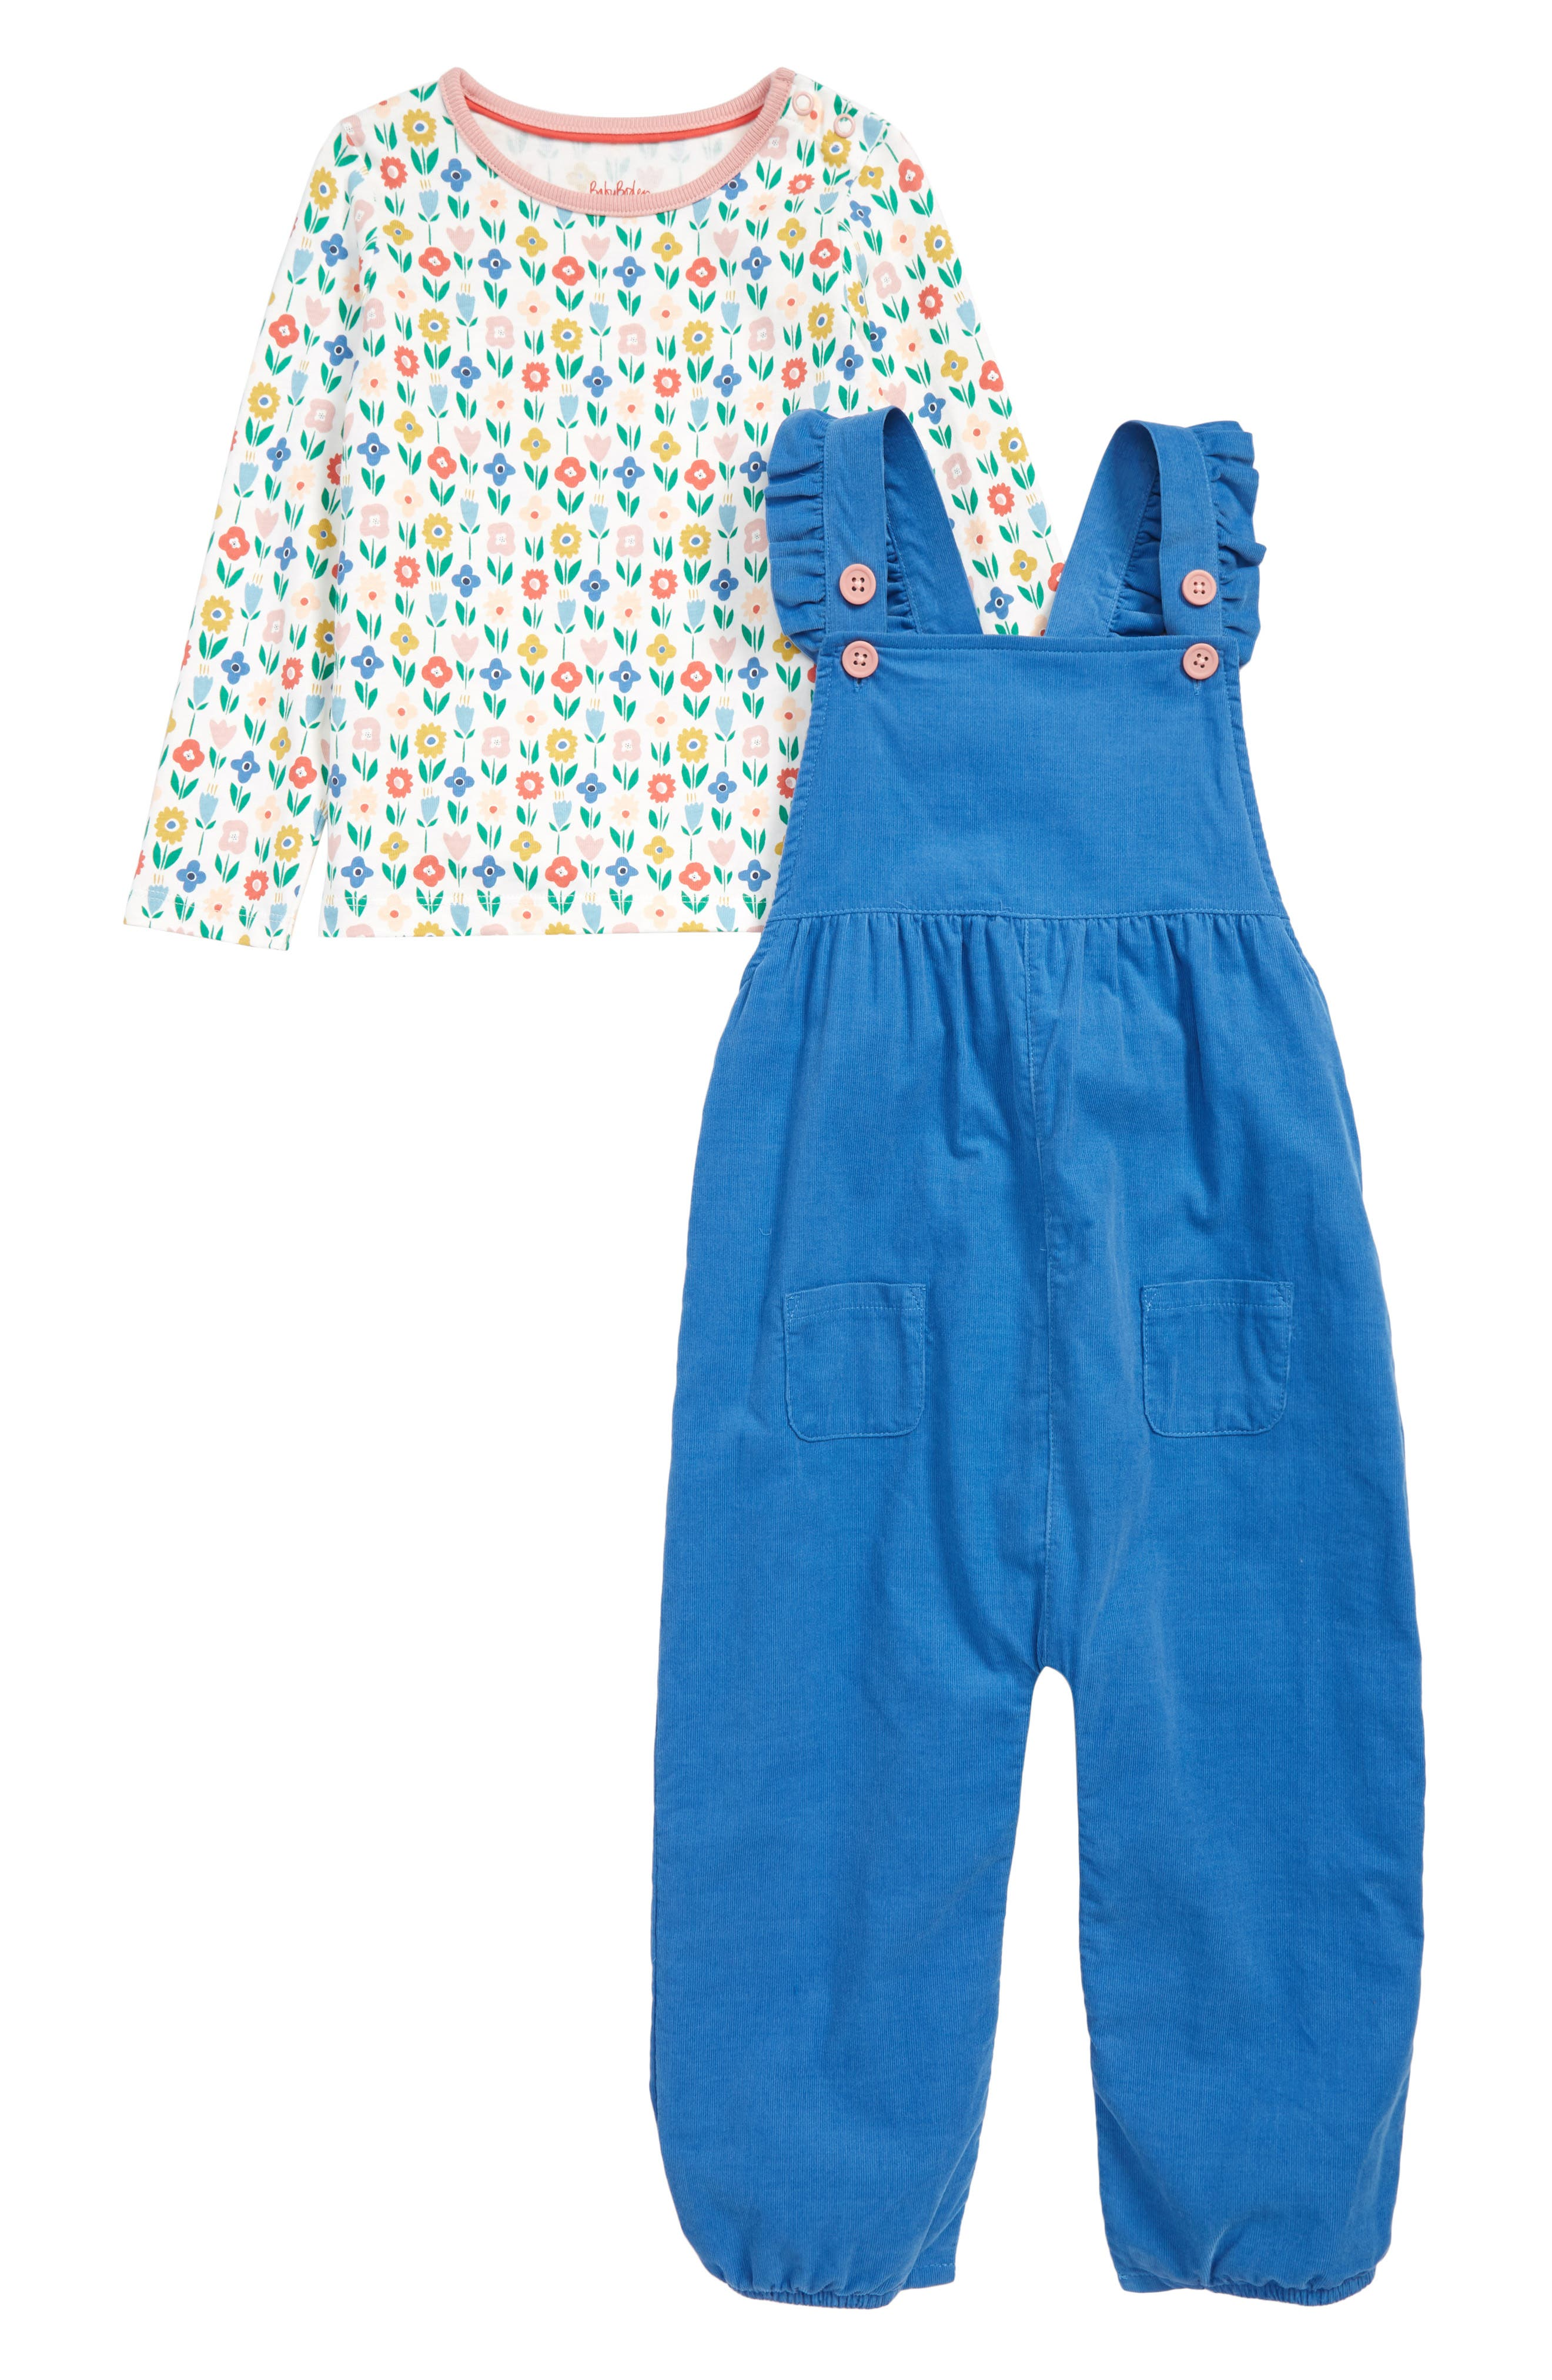 MINI BODEN,                             Flower Patch Tee & Frilly Corduroy Overalls Set,                             Main thumbnail 1, color,                             400